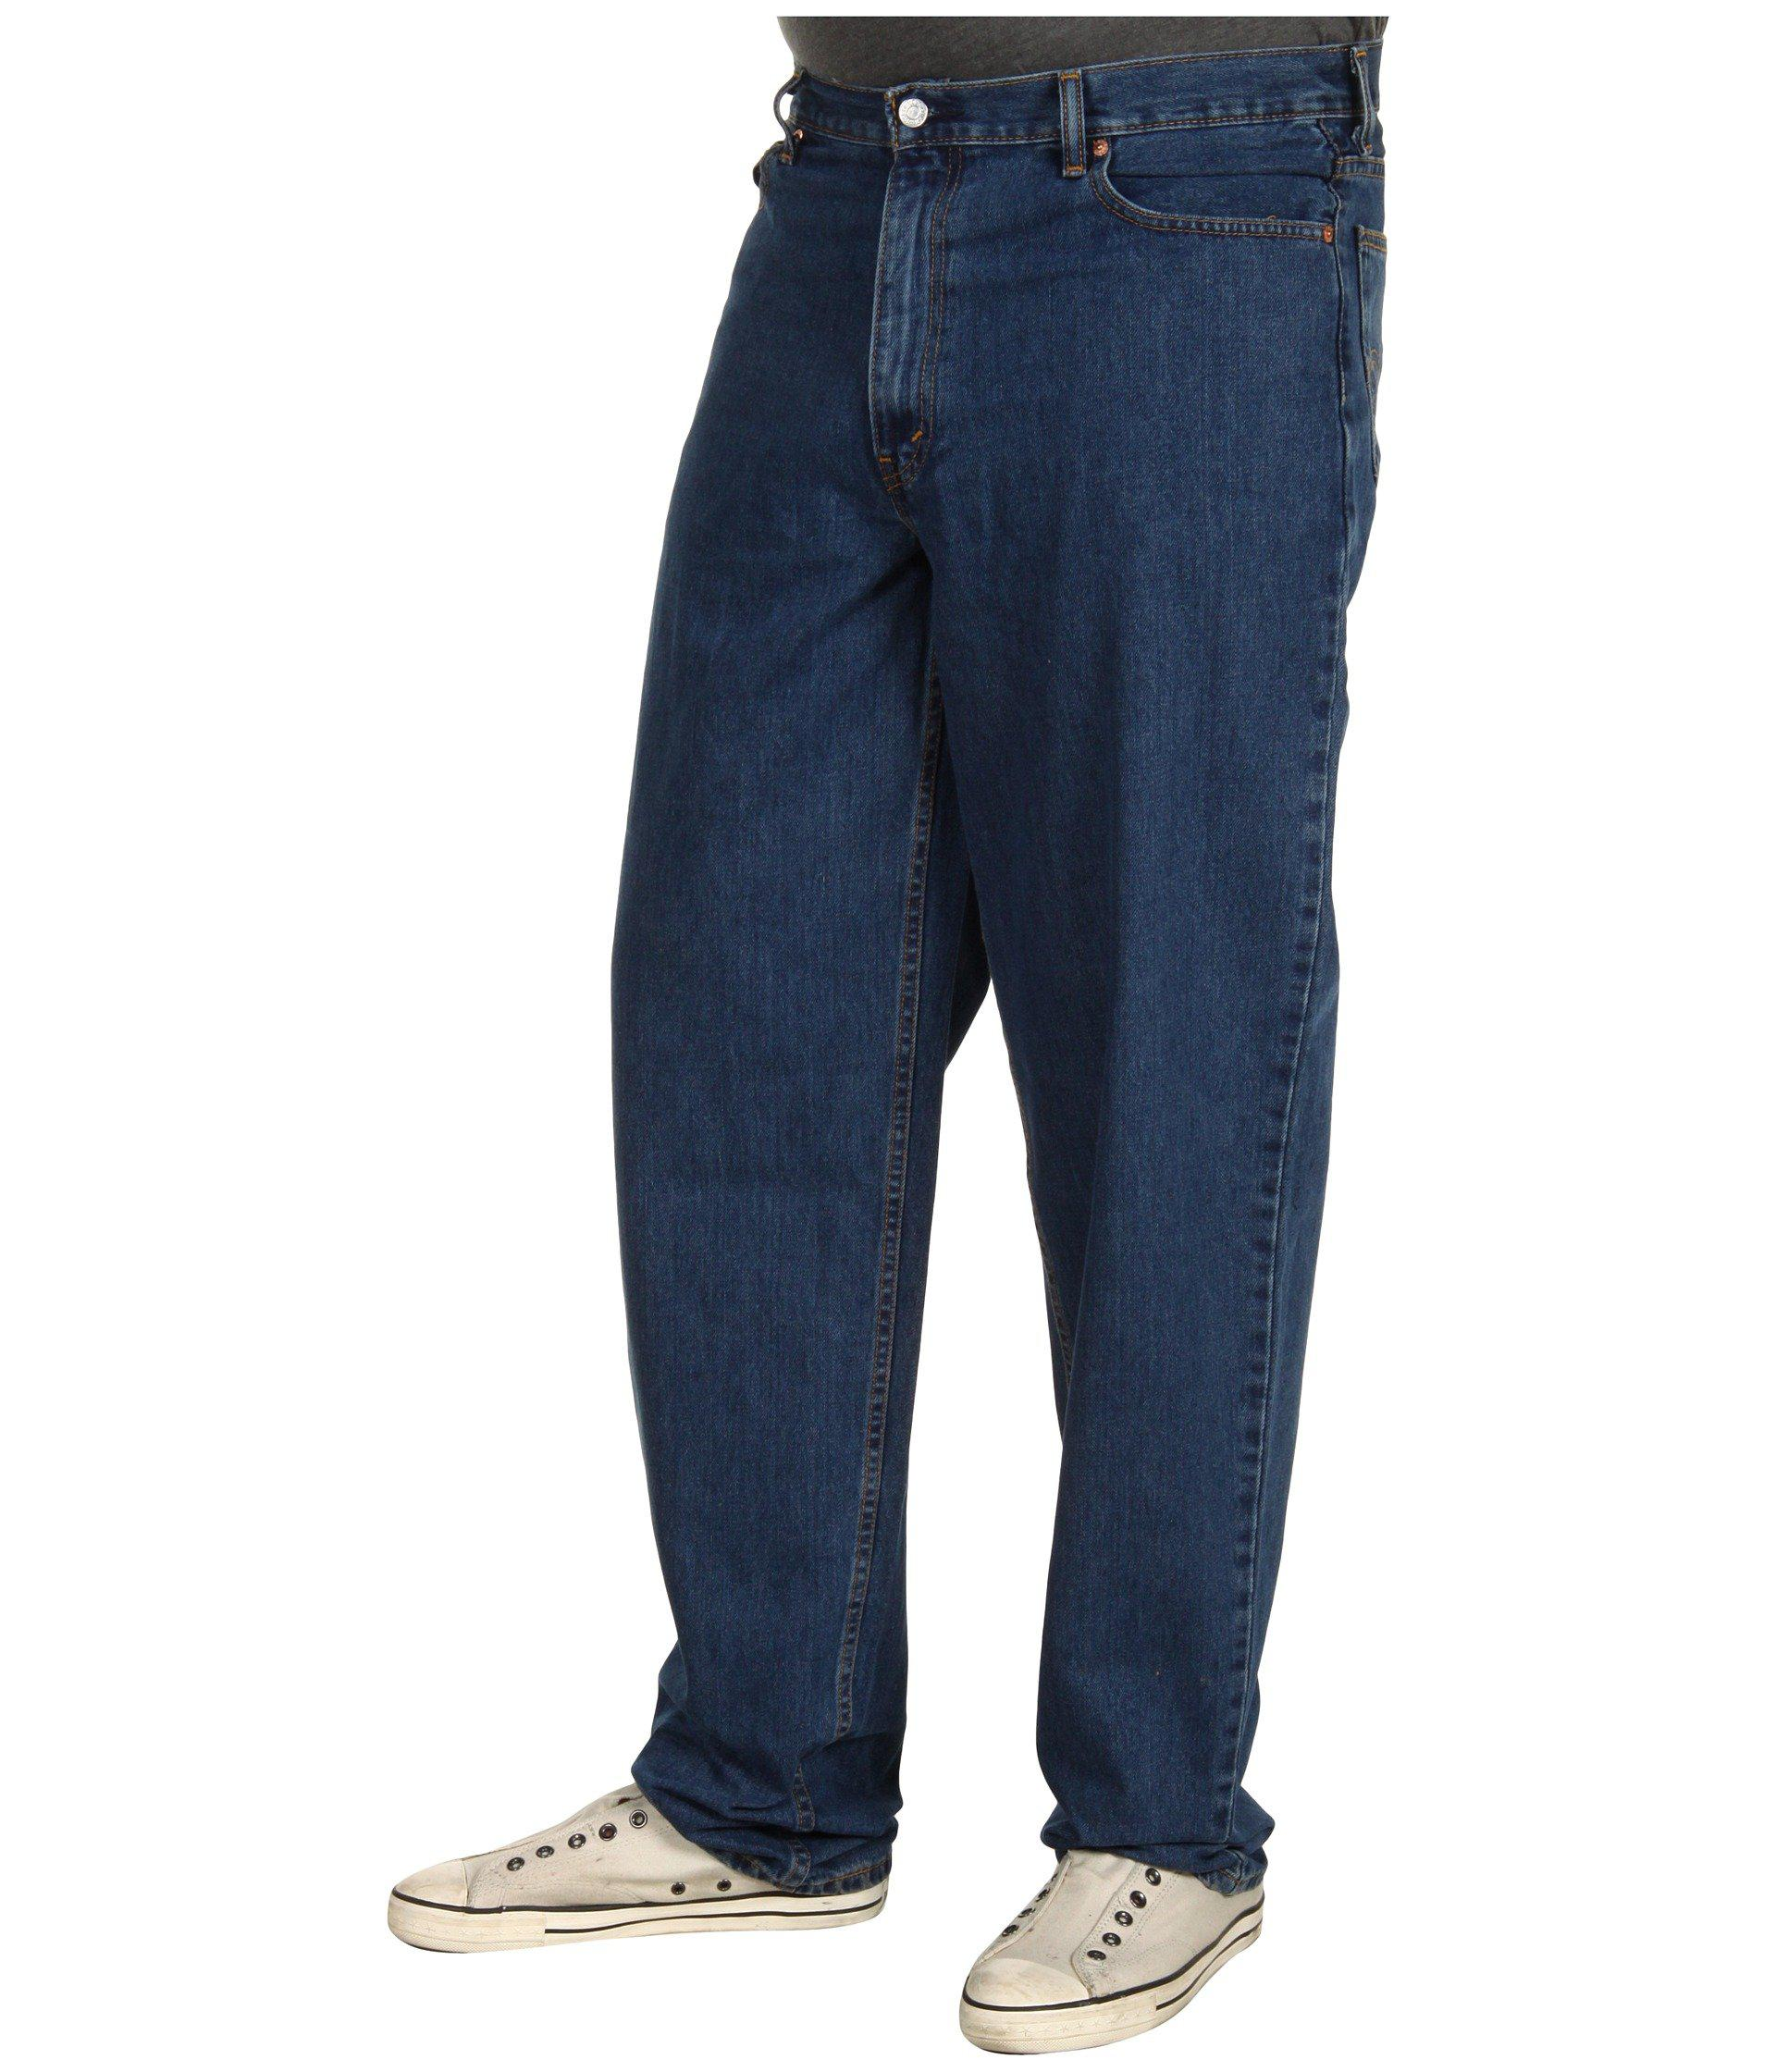 ec1b7a0e Lyst - Levi's Levi's(r) Big & Tall Big Tall 560tm Comfort Fit (medium  Stonewash) Men's Jeans in Blue for Men